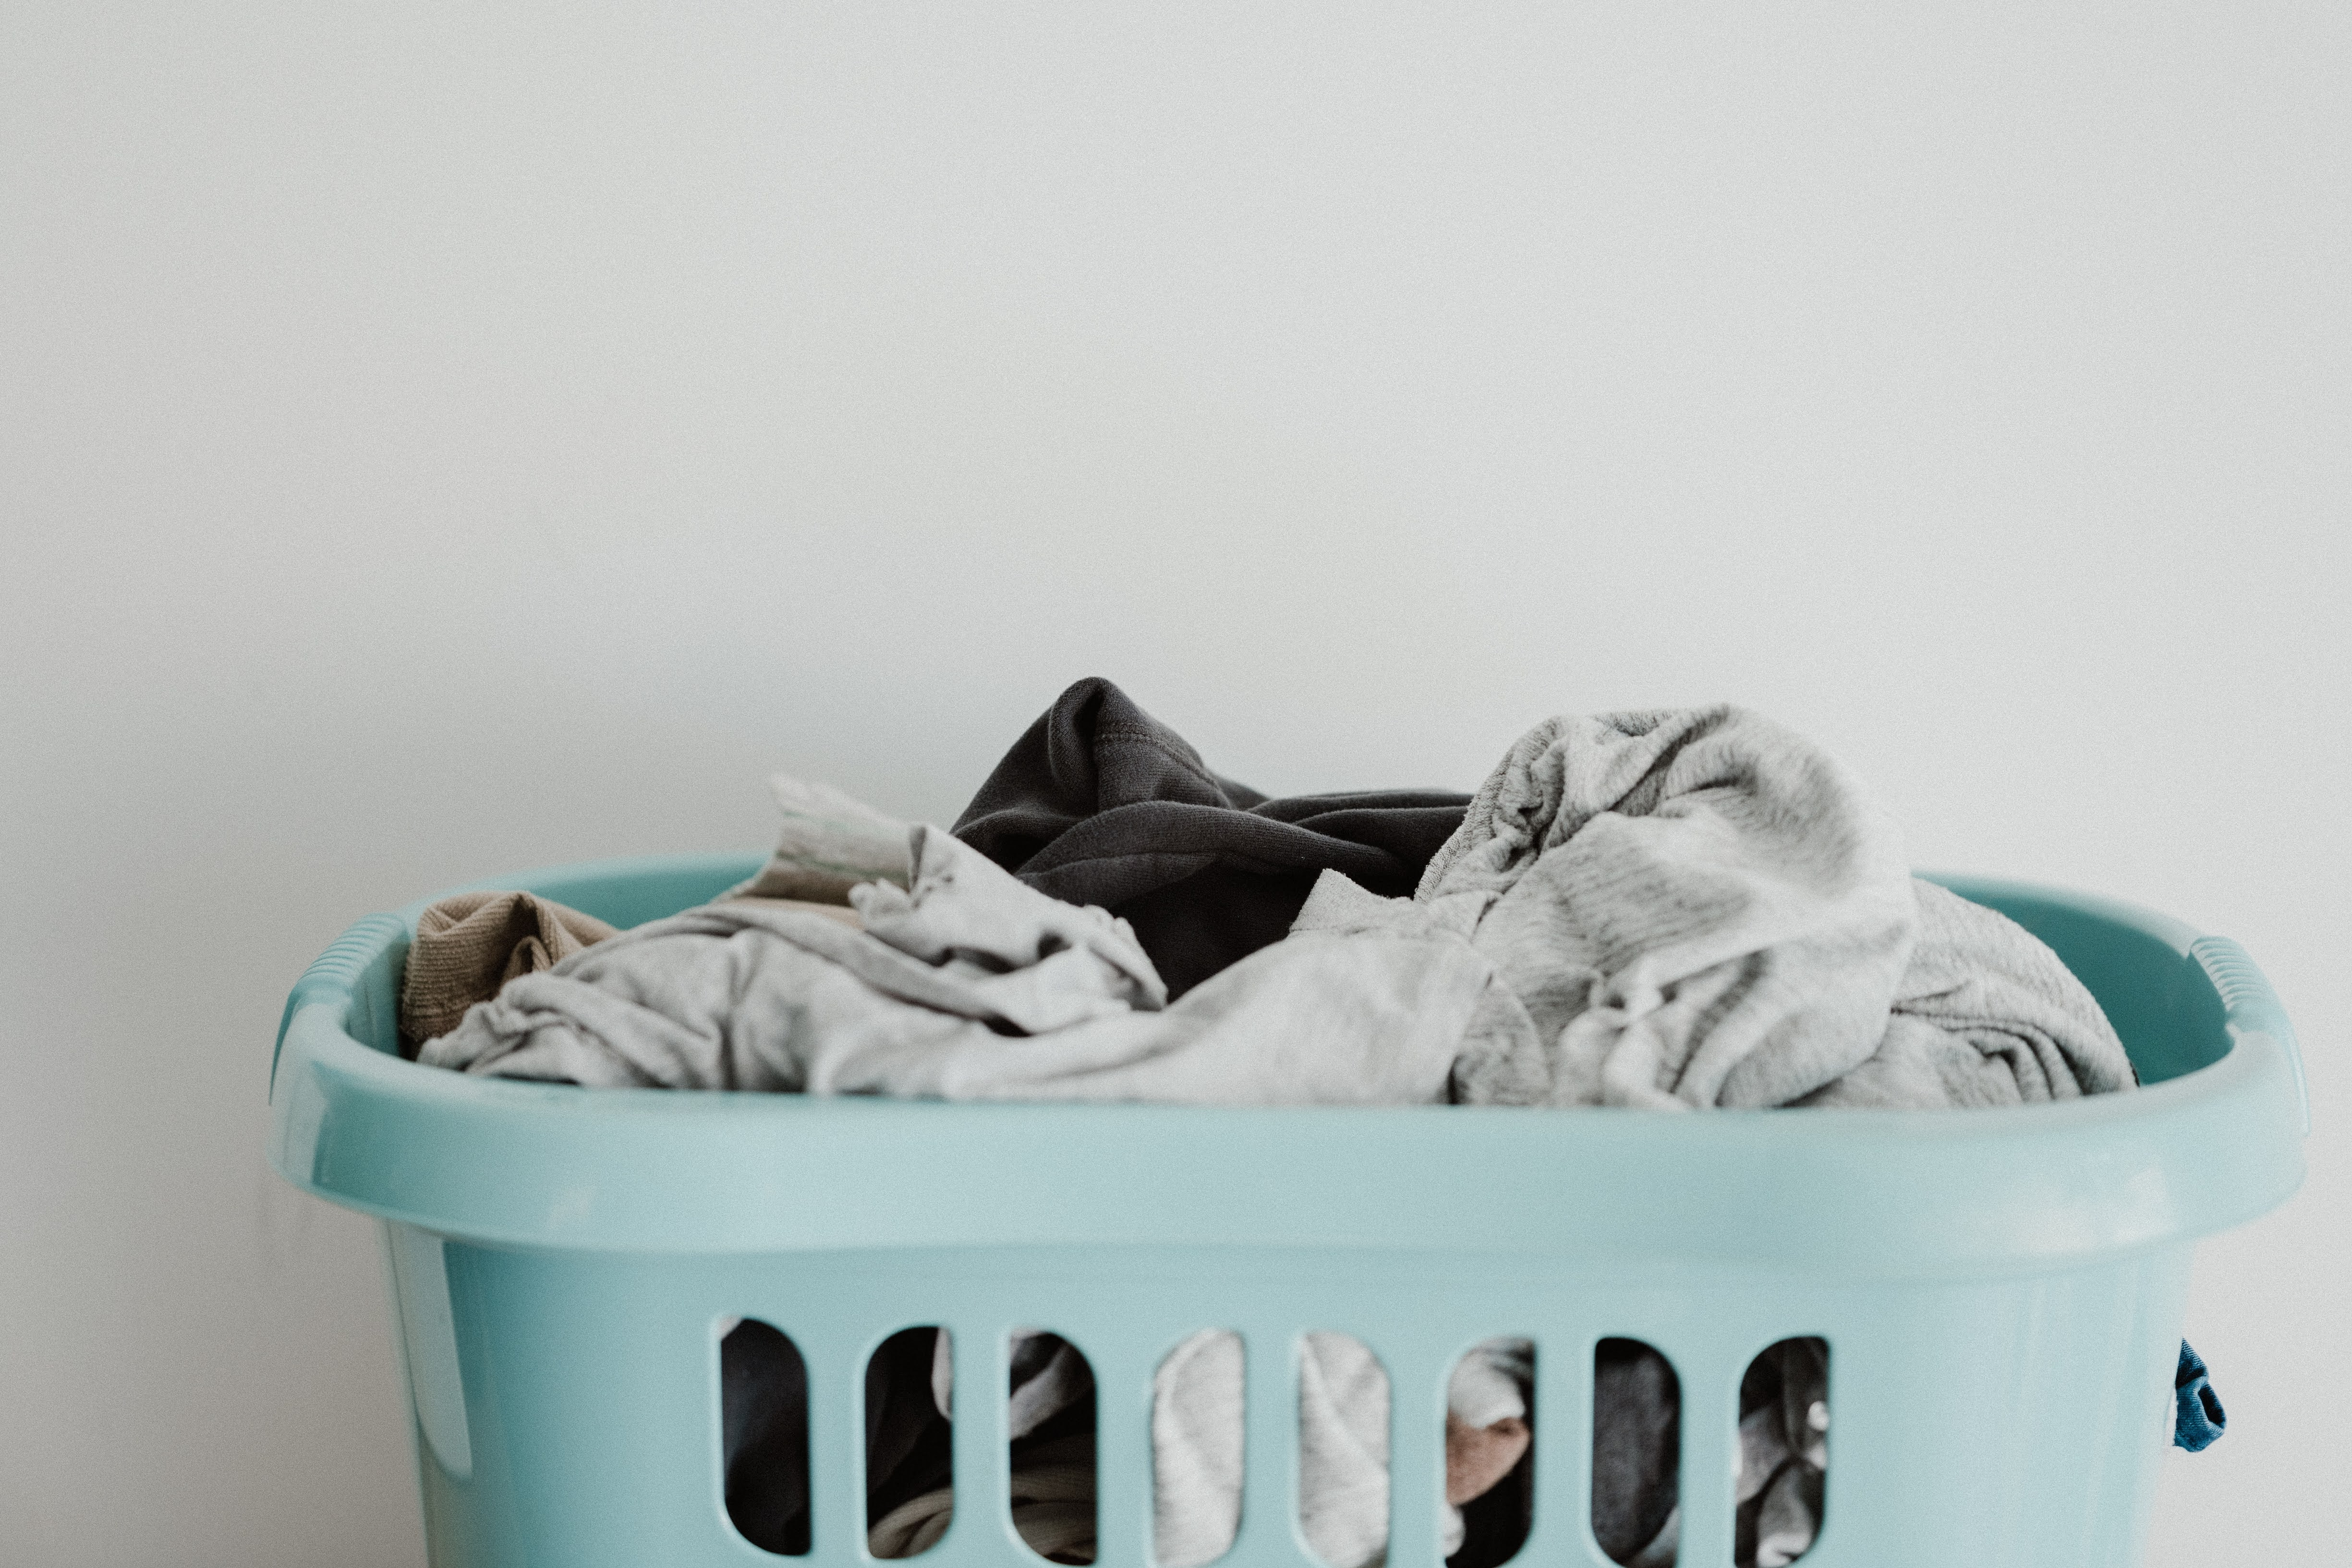 White Textile on Blue Plastic Laundry Basket | Photo by Annie Spratt via Unsplash